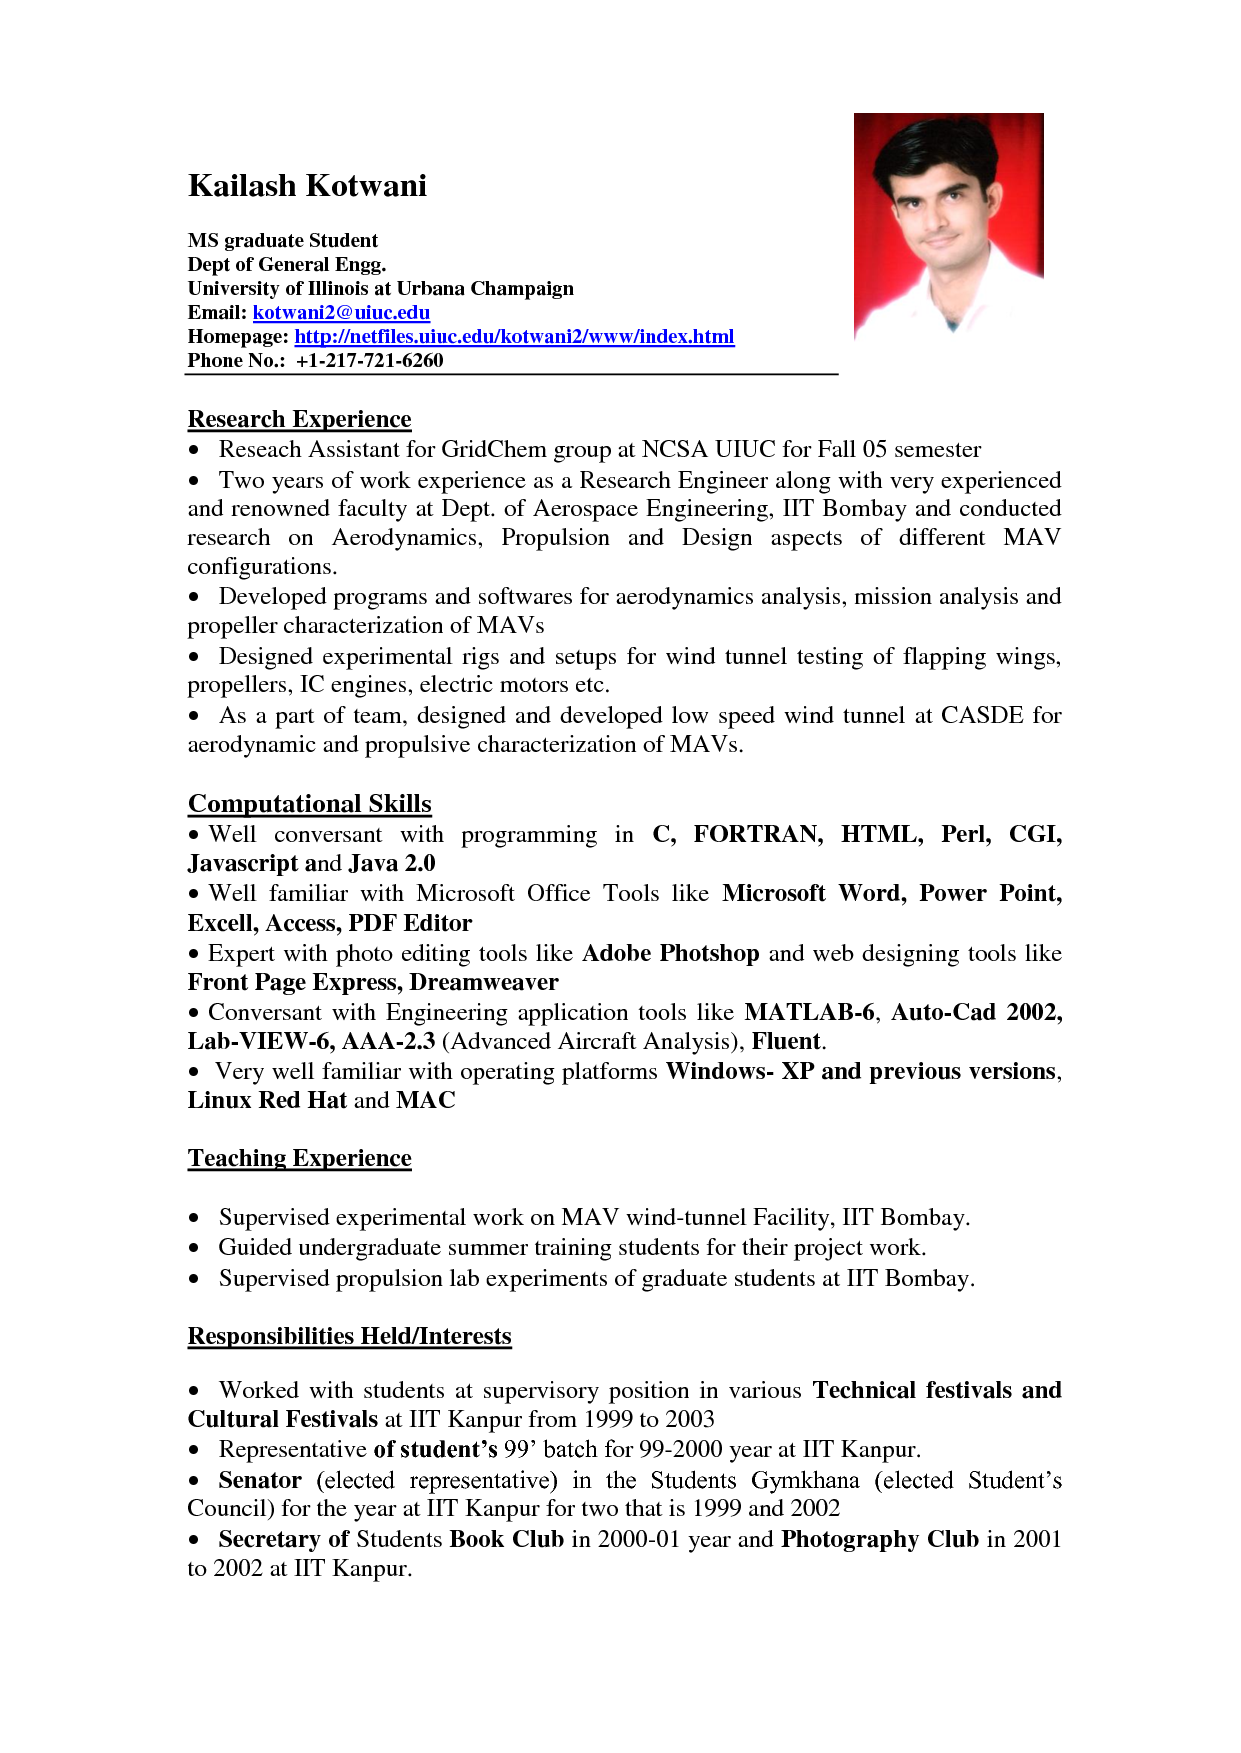 Beautiful High School Student Resume Examples No Work Experience No Work Experience  Resume Content. How To Write A Resume Resume . Regard To How To Write A Resume Without Work Experience